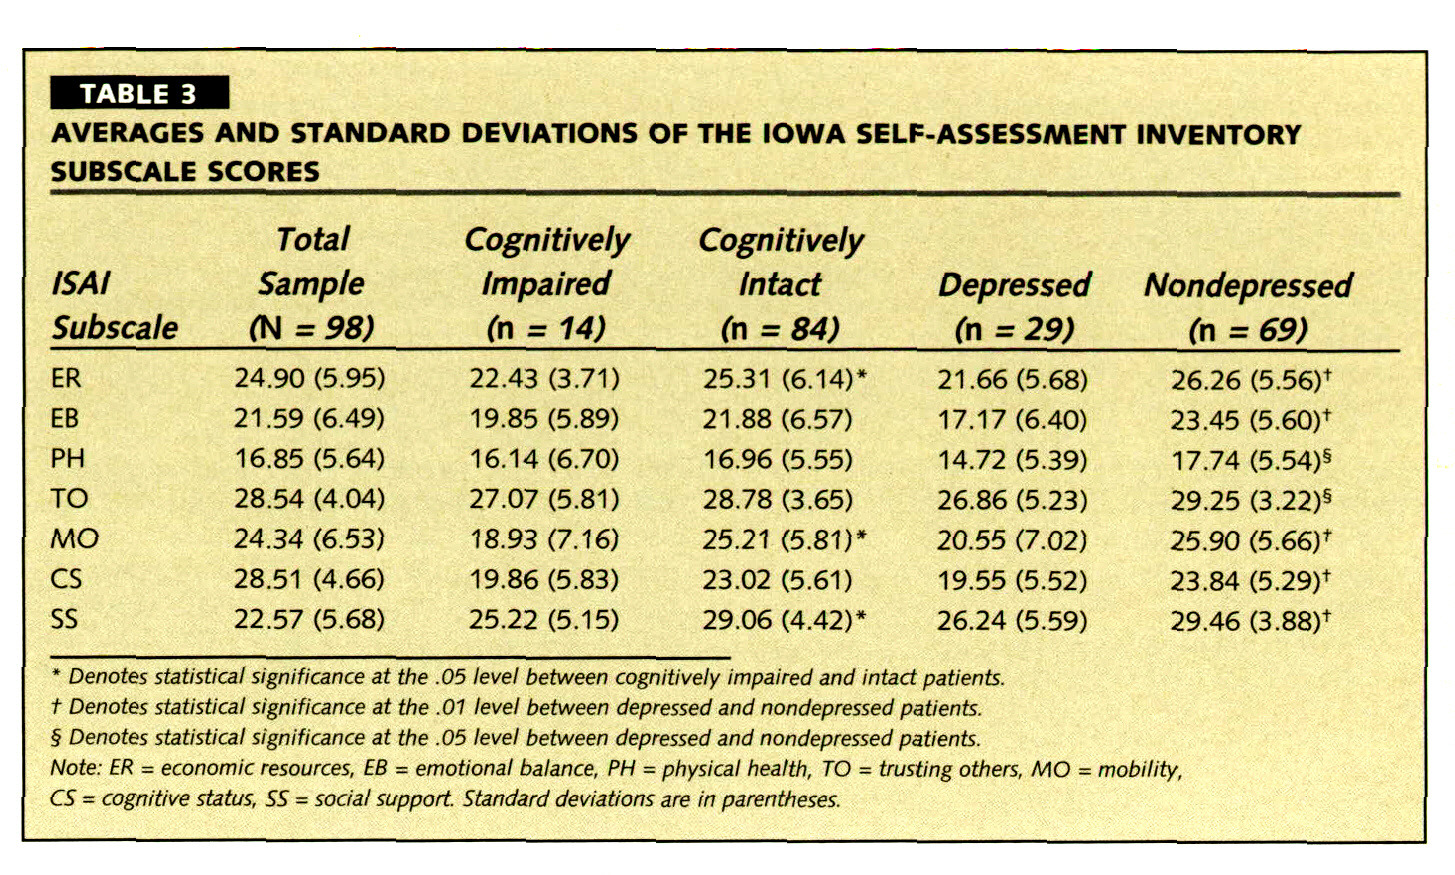 TABLE 3AVERAGES AND STANDARD DEVIATIONS OF THE IOWA SELF-ASSESSMENT INVENTORY SUBSCALE SCORES